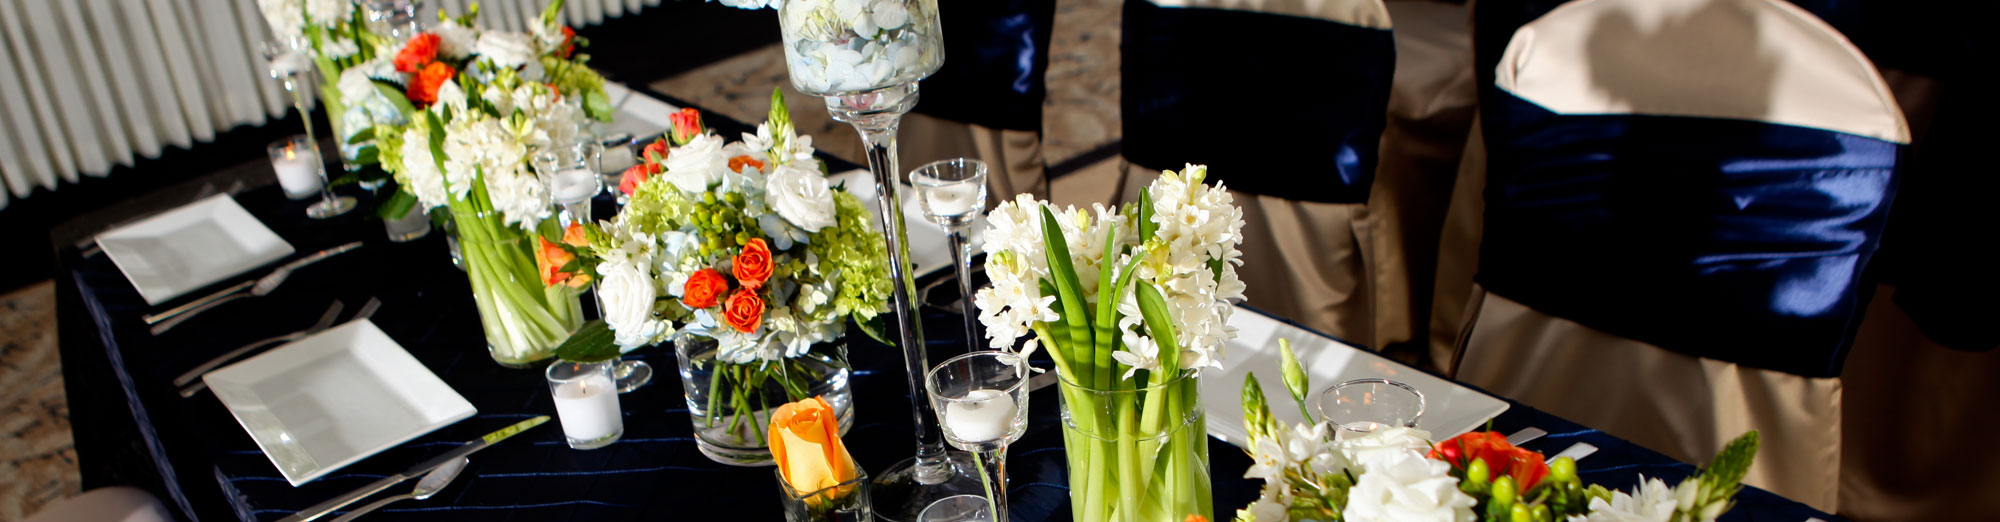 White floral table arrangements